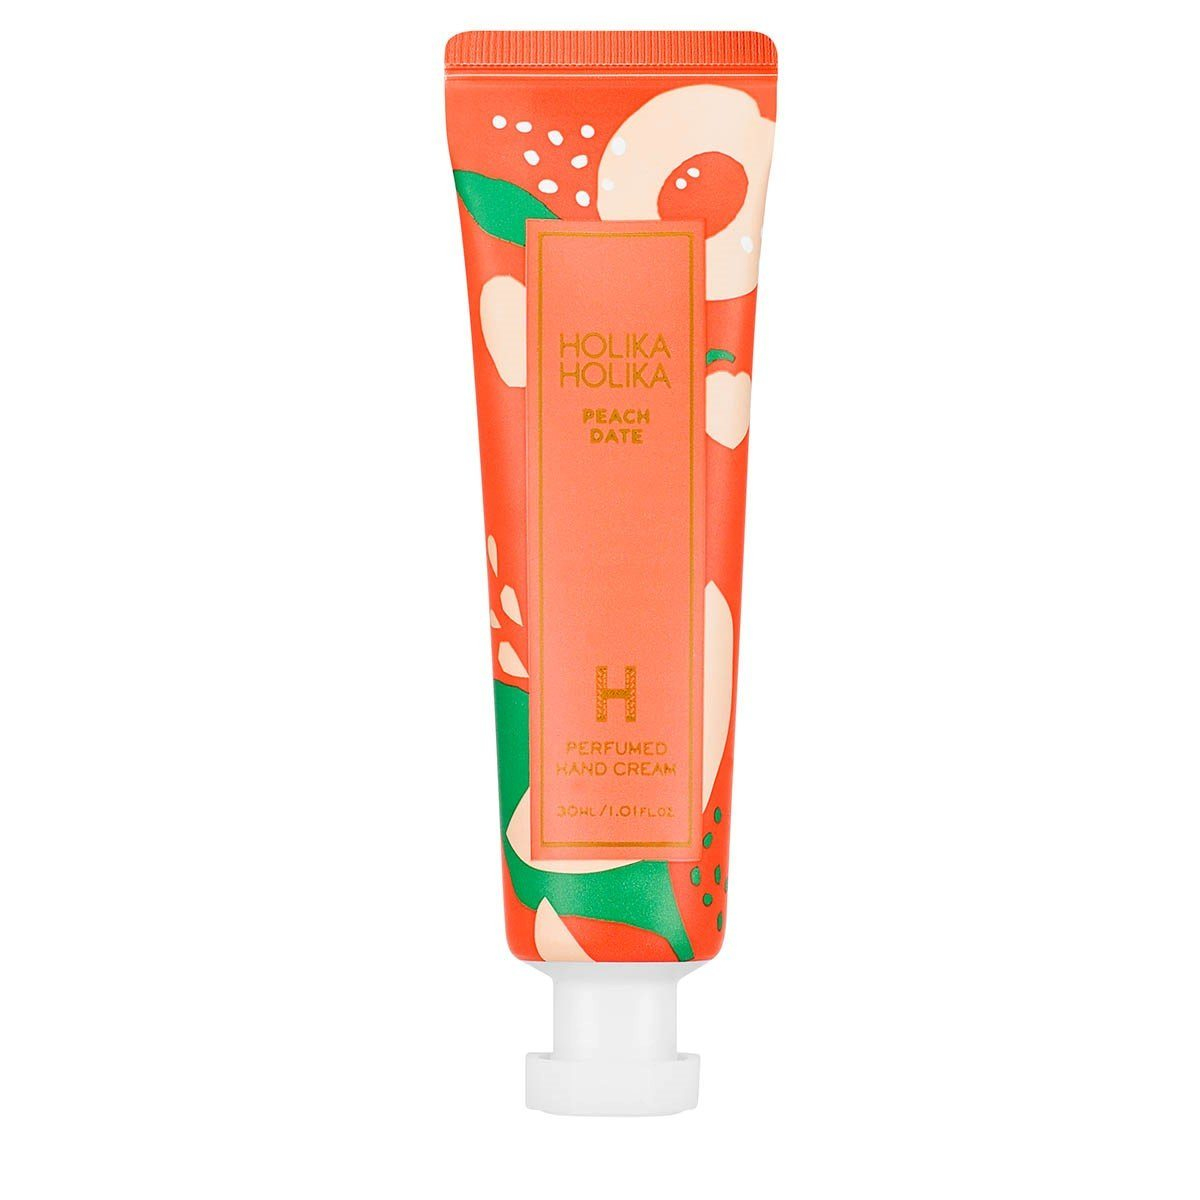 Health & Beauty > Personal Care > Cosmetics > Skin Care > Lotion & Moisturizer - Peach Date Perfumed Hand Cream Krem Do Rąk 30 Ml